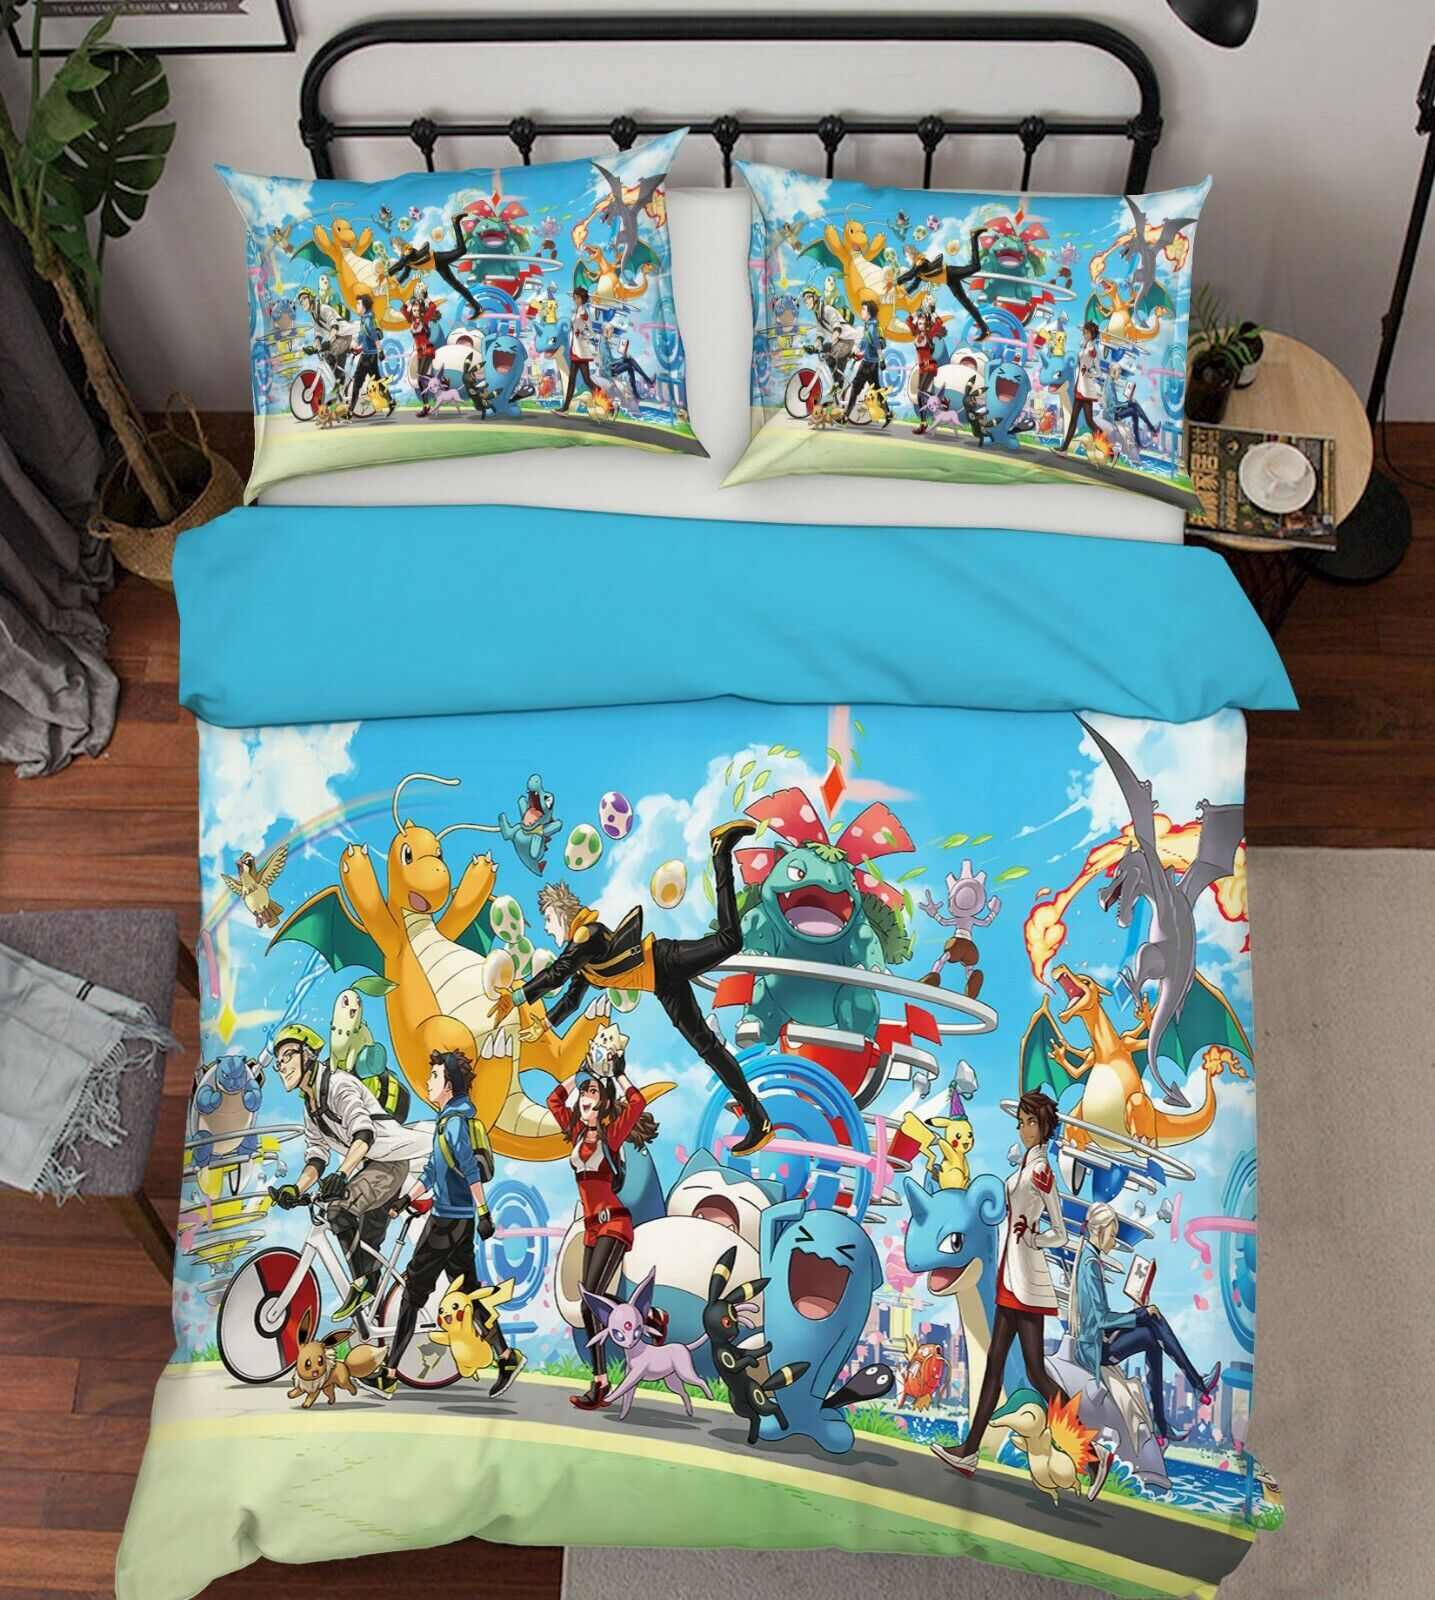 3D Duvet Cover for Pokemon T562 Japan Anime Bed Pillowcases Quilt Duvet Cover Su